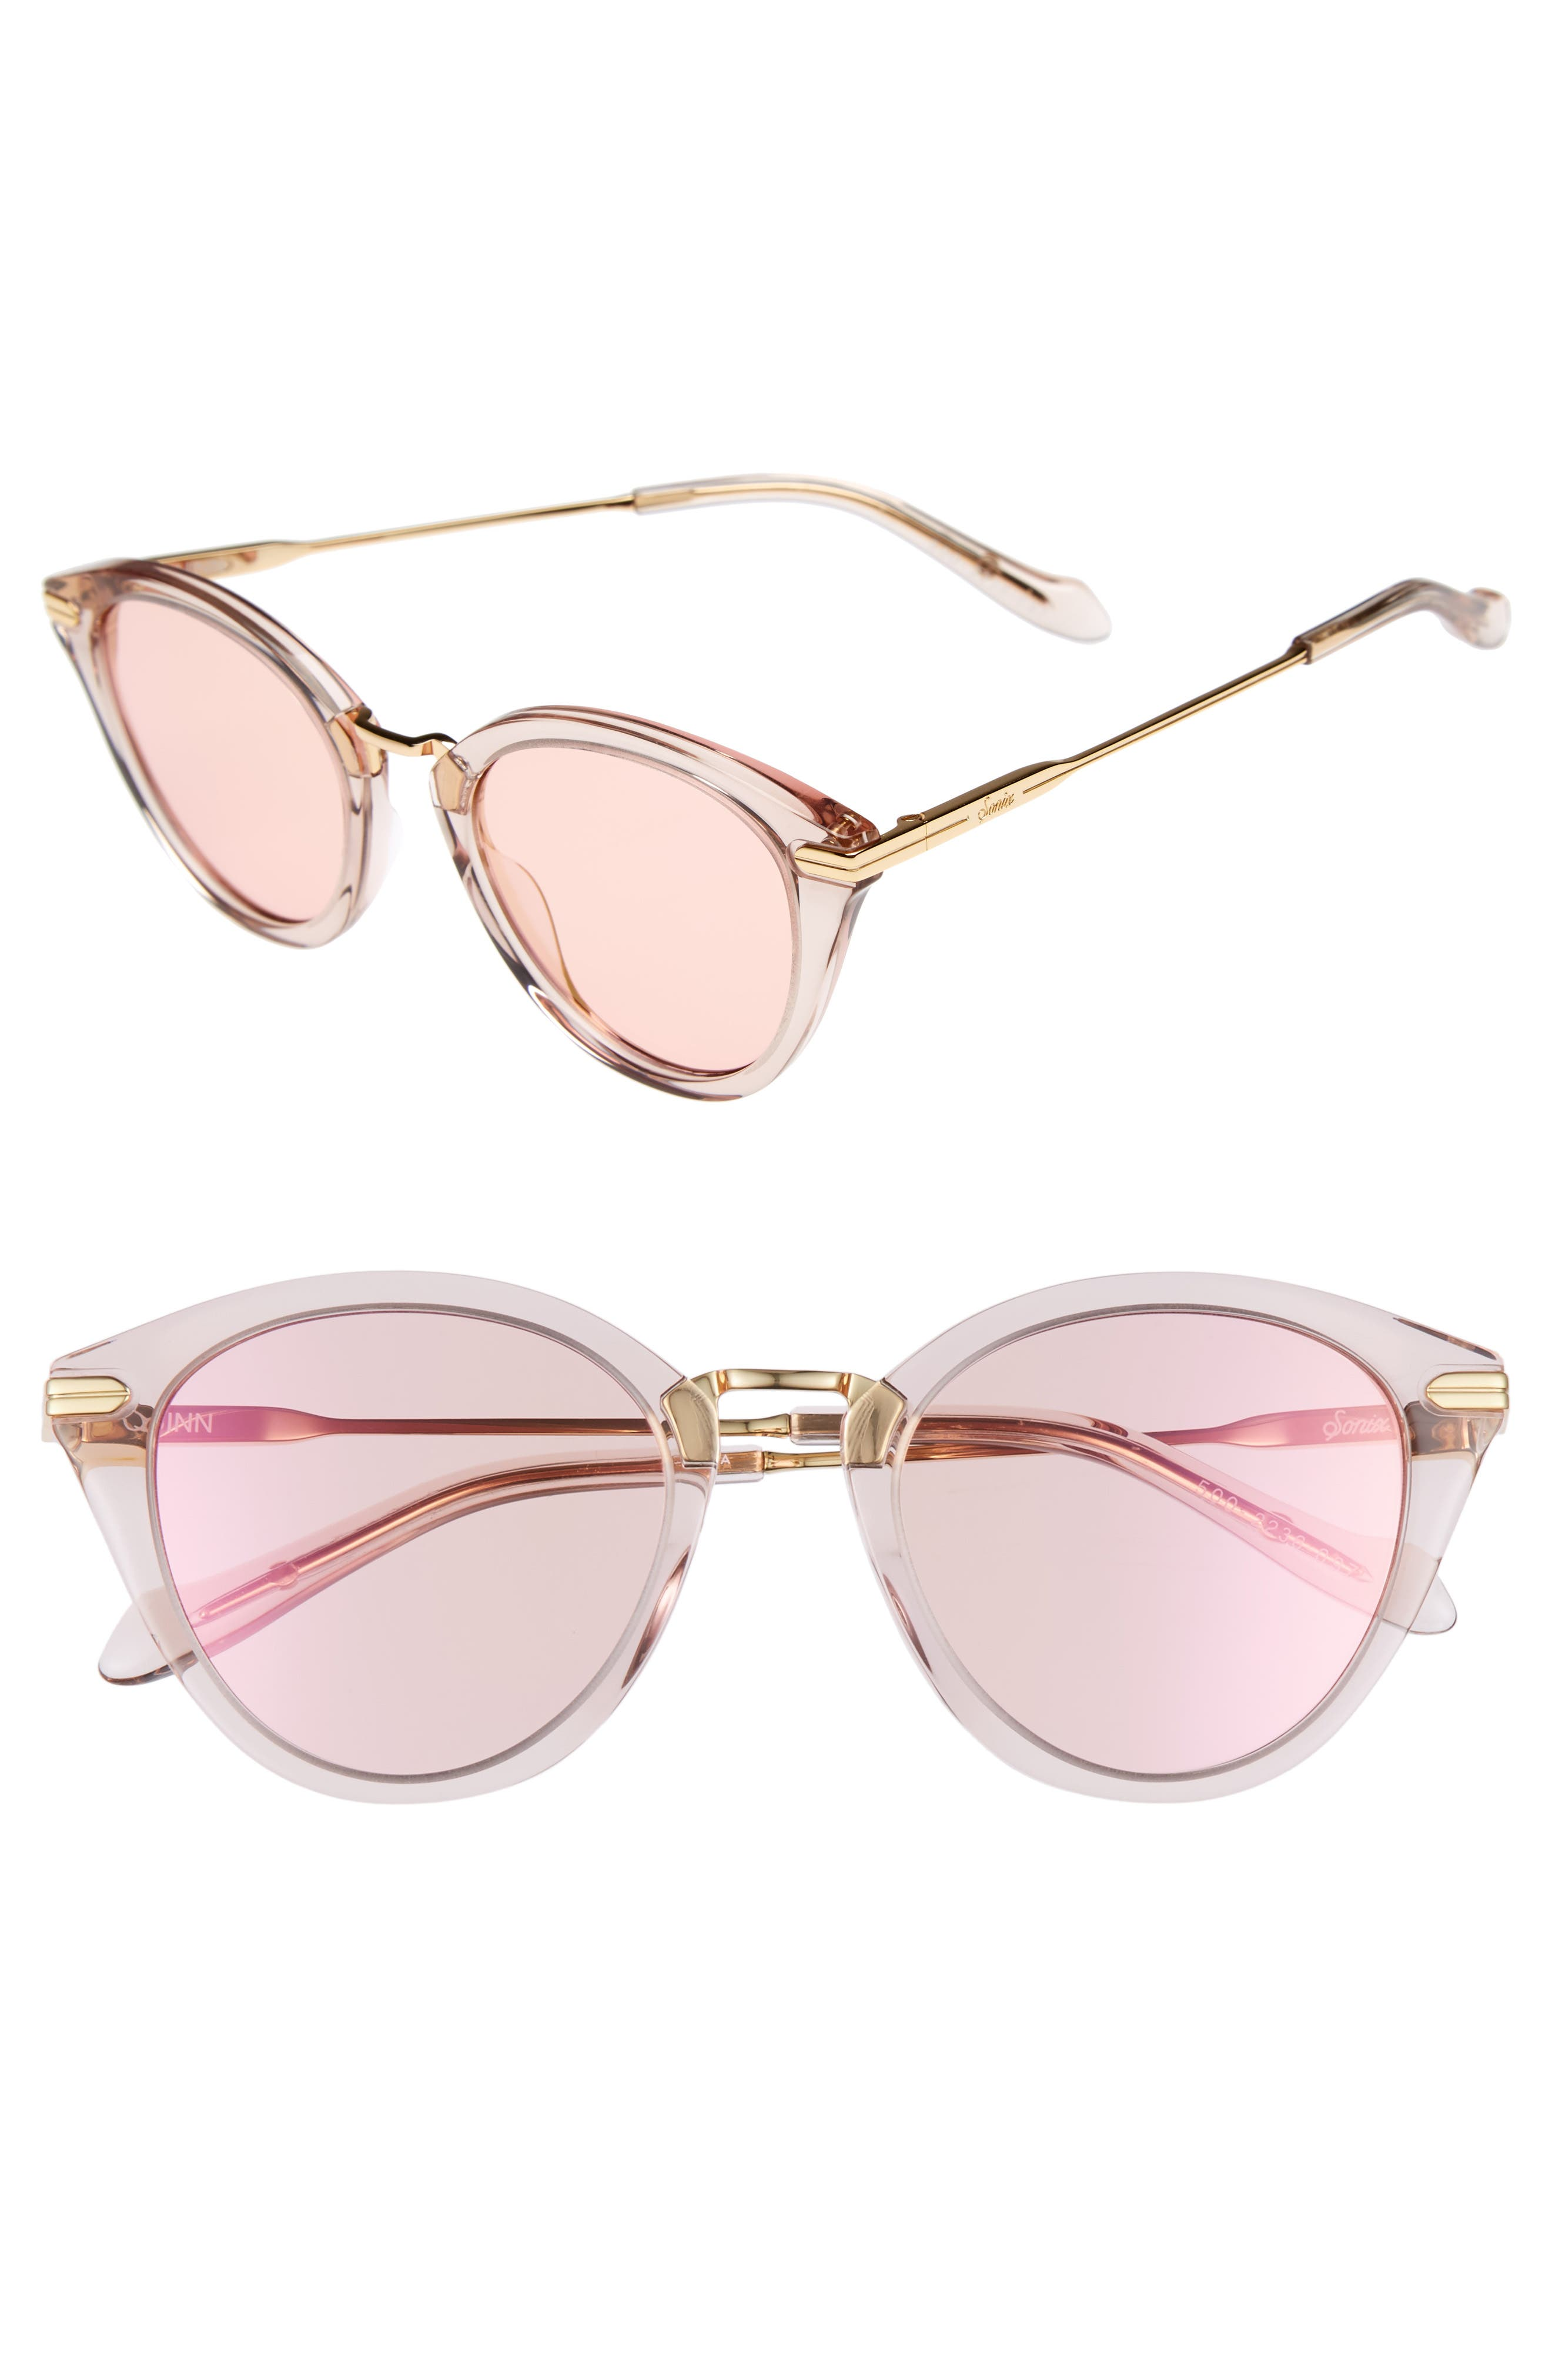 Quinn 48mm Cat Eye Sunglasses,                             Main thumbnail 1, color,                             Mauve Clear/ Pink Mirror